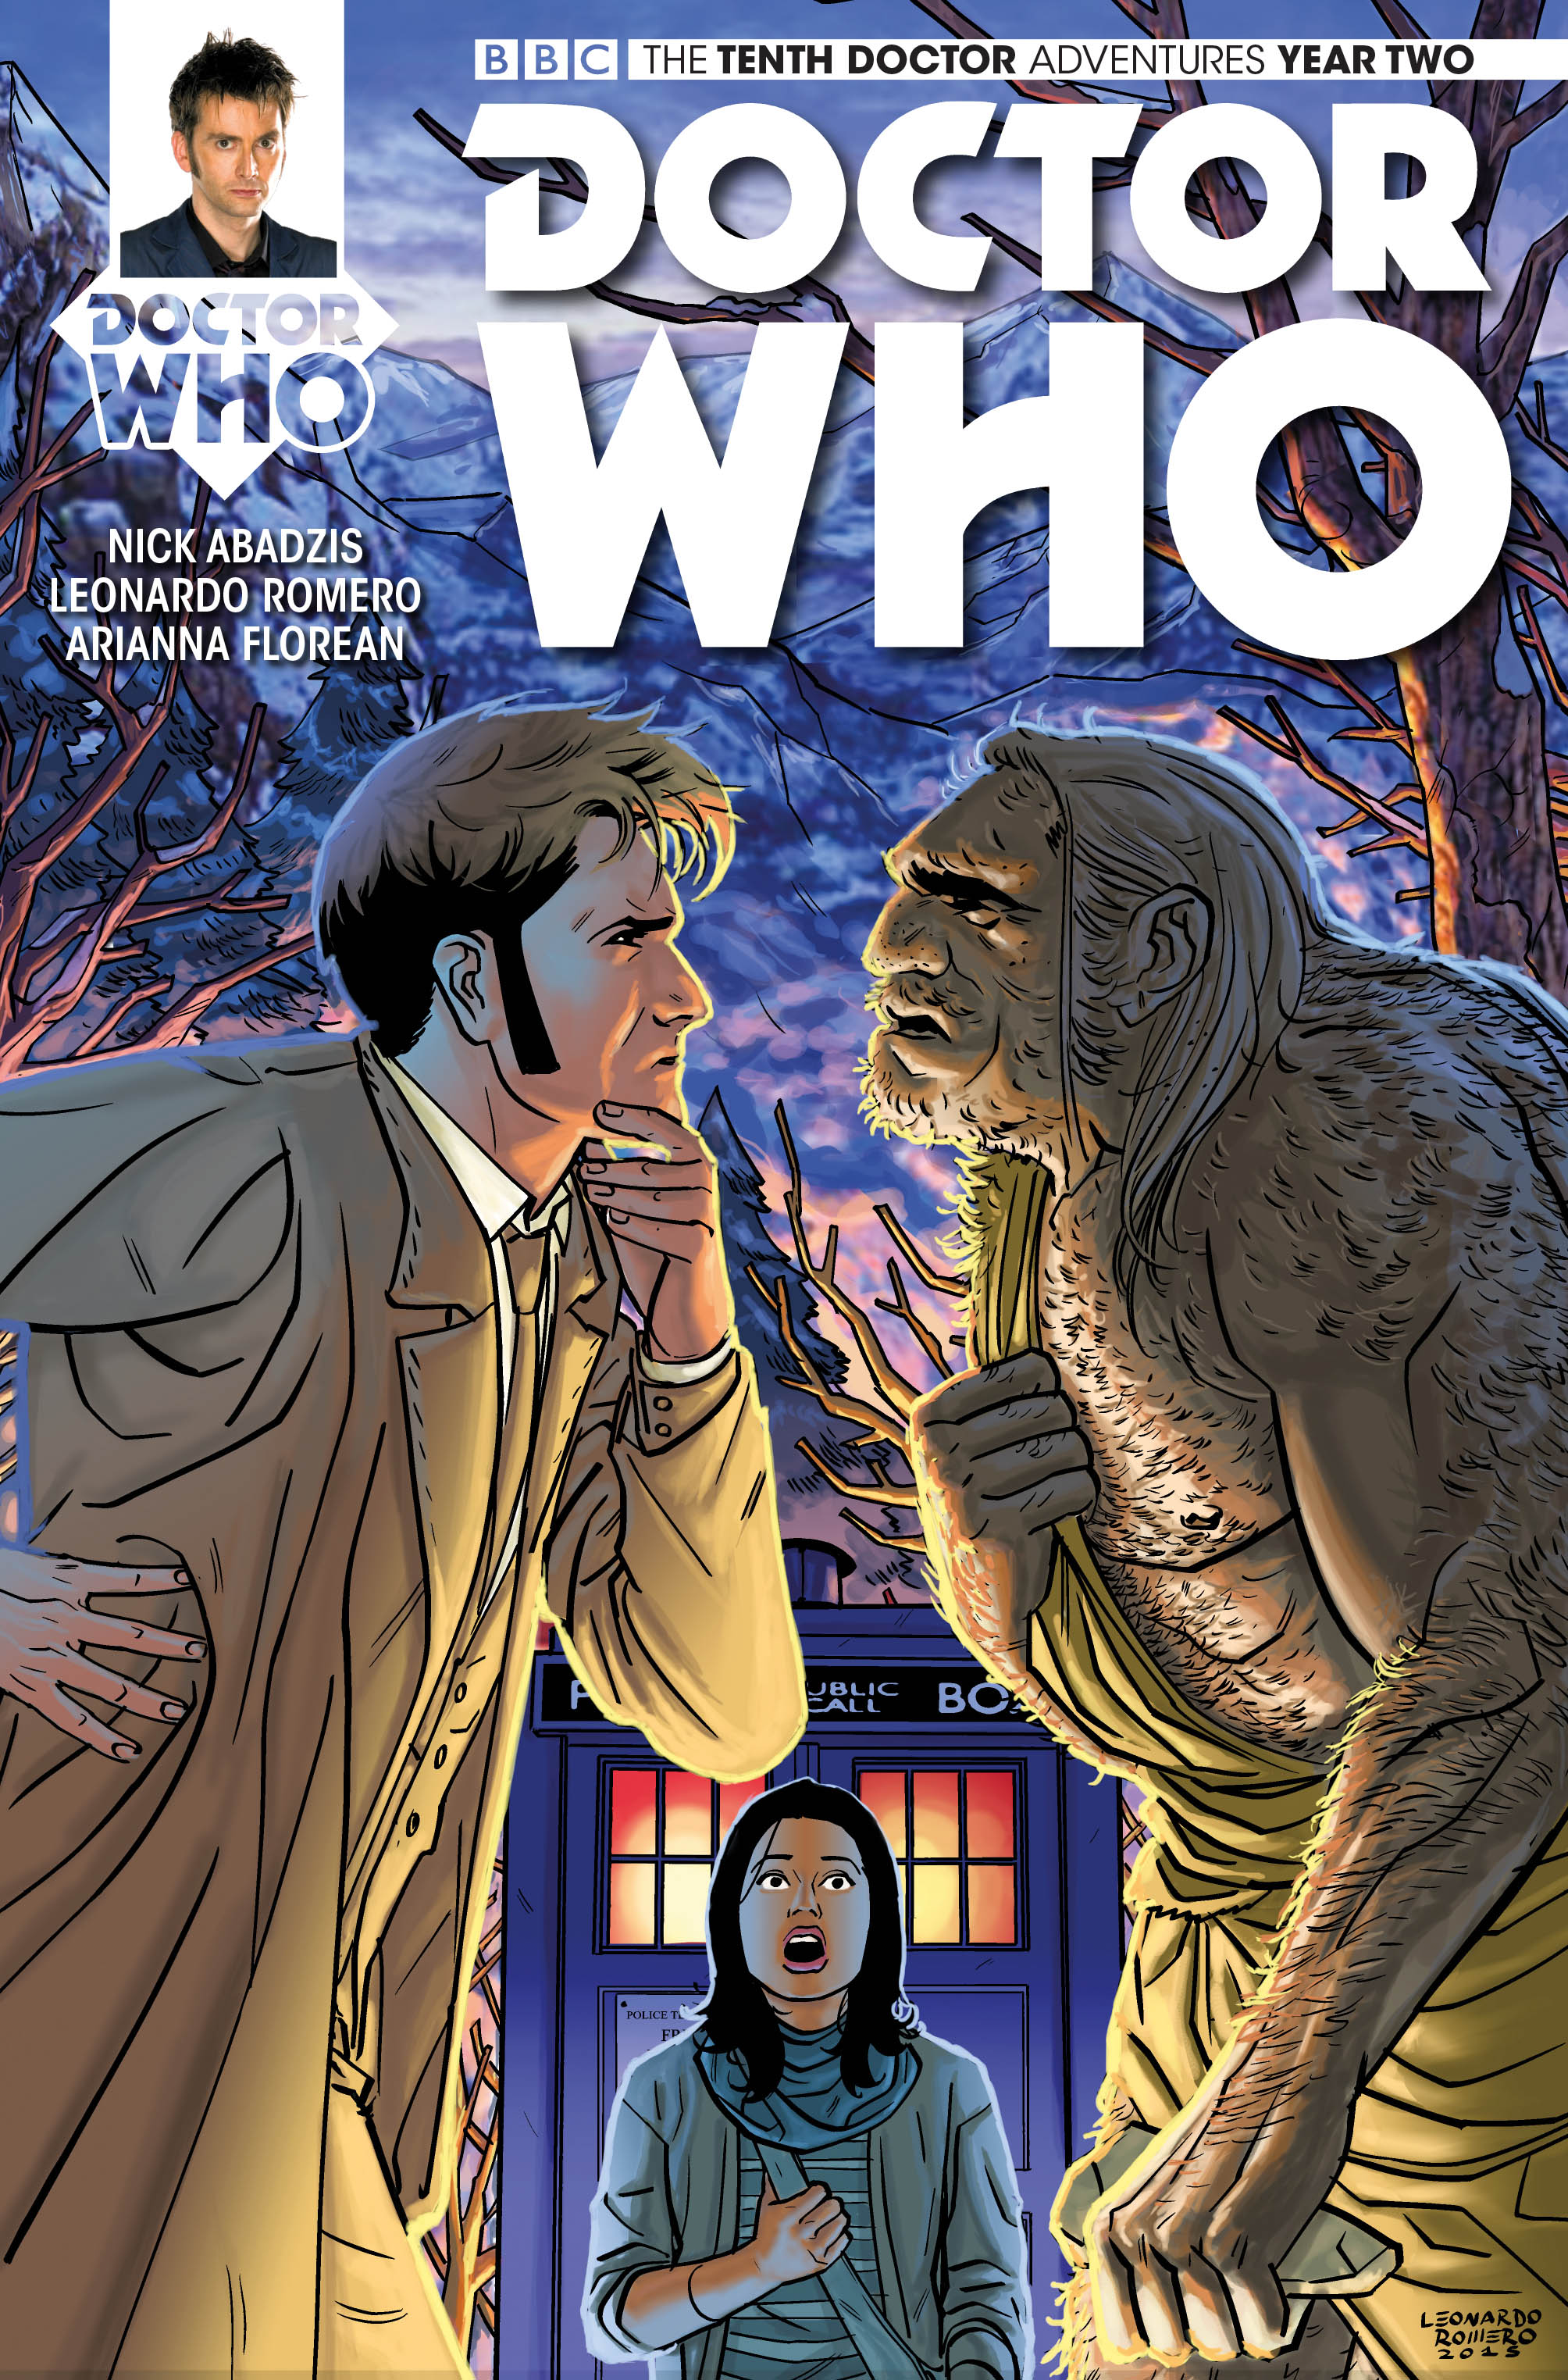 Doctor Who Comic: Tenth Doctor, Year 2, Issue 04